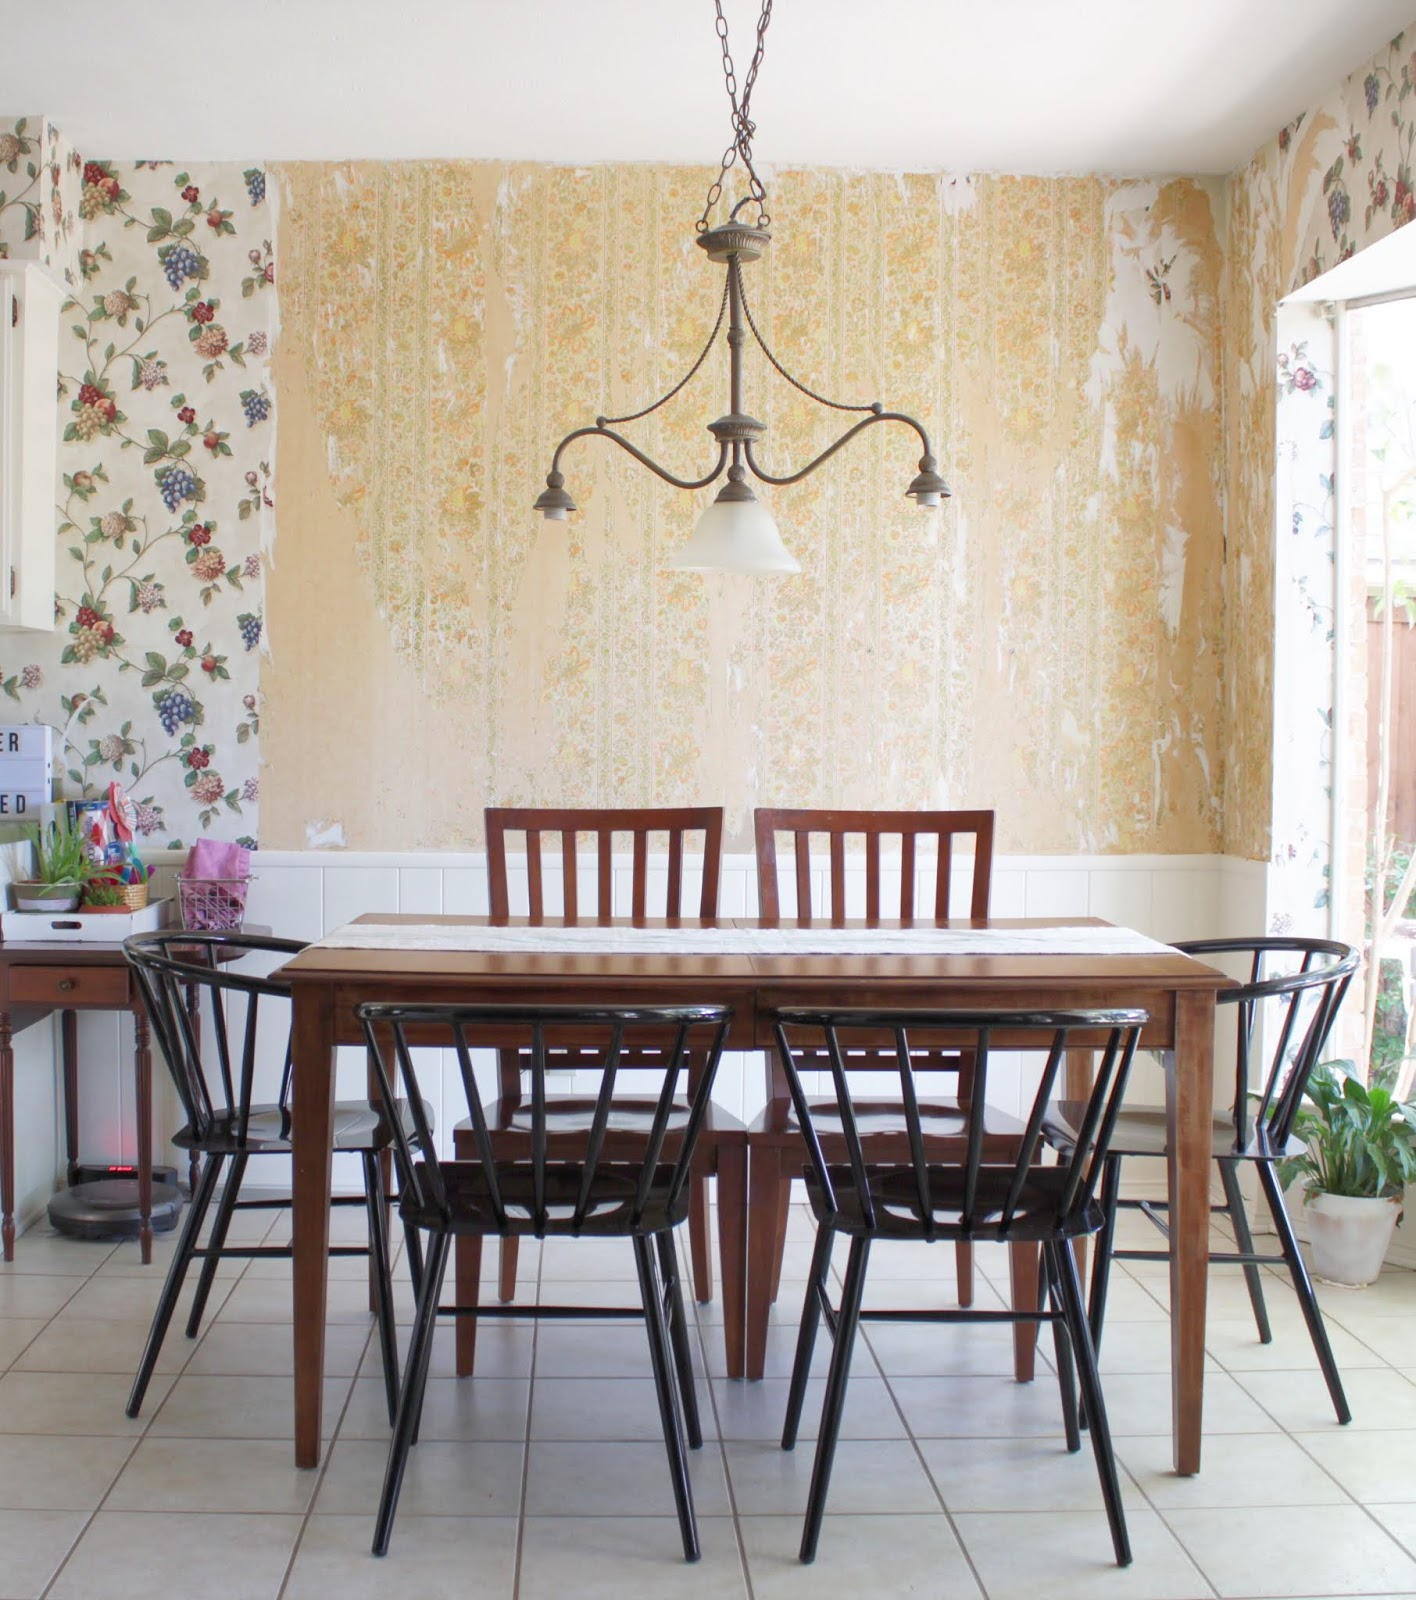 Modern Eclectic Dining Room Tour and Sources | House Homemade